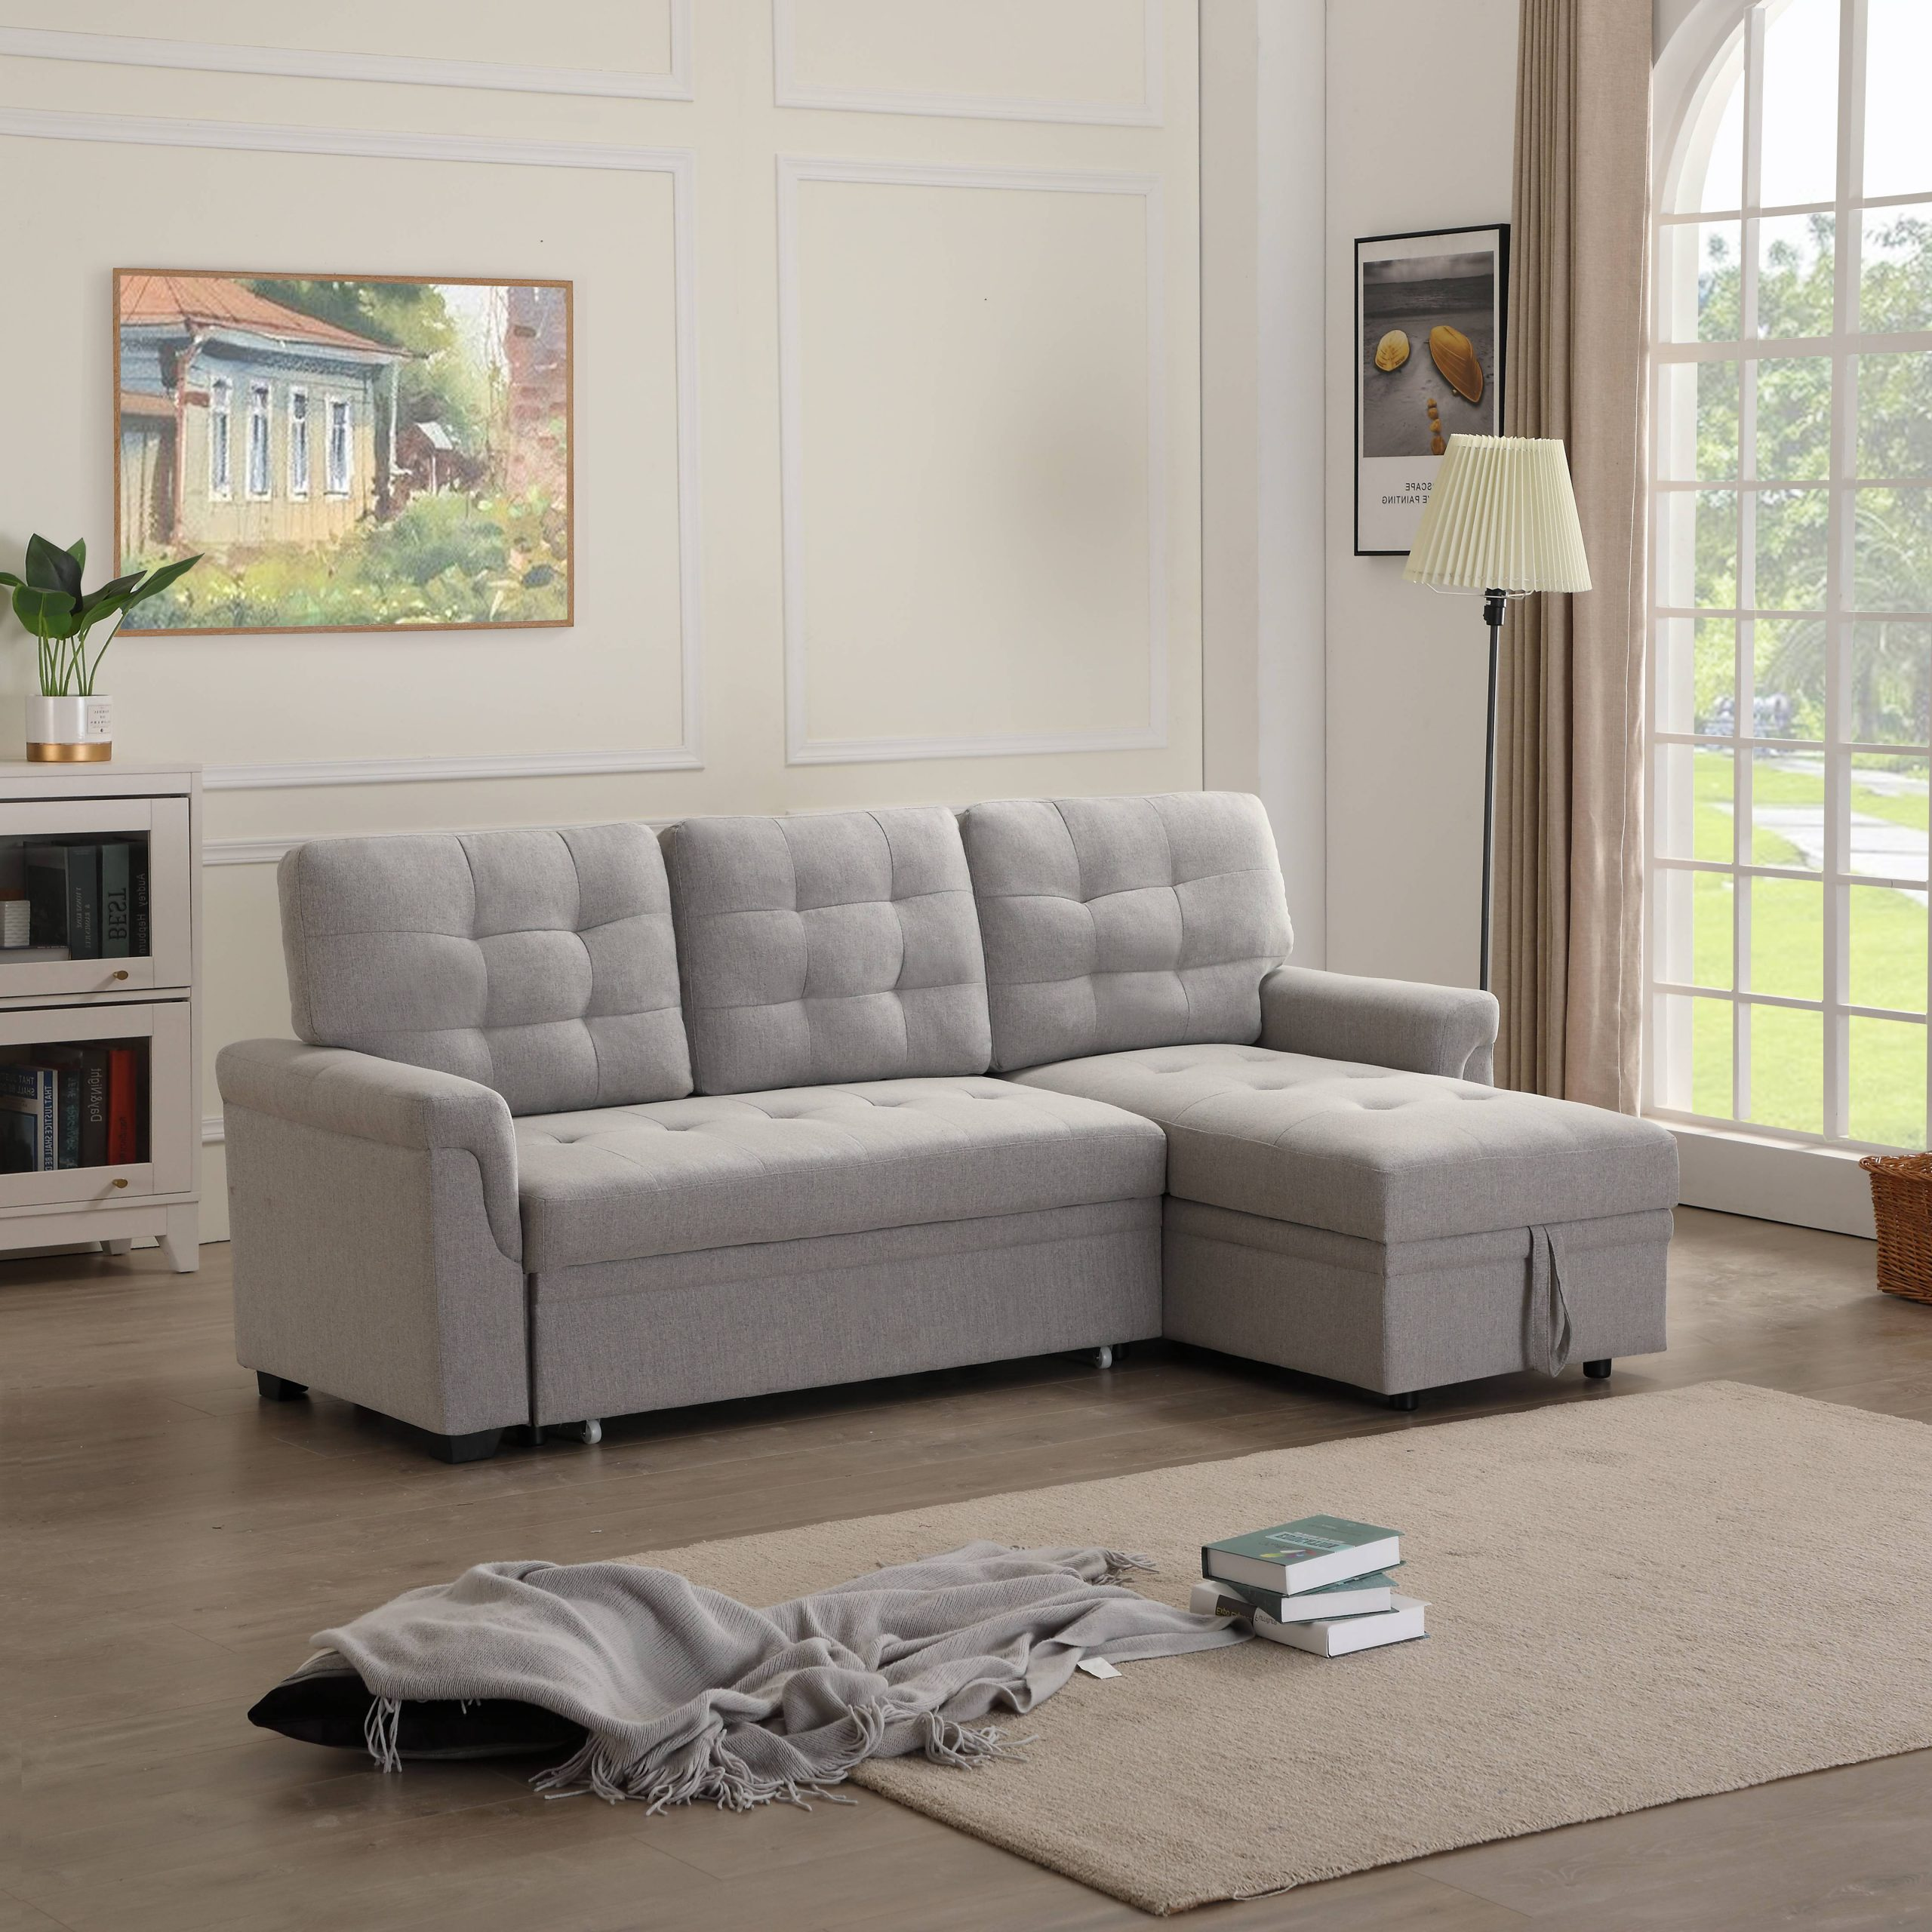 """86""""w Modern Sectional Sofa Bed With Reversible Chaise, L With Regard To Most Current Easton Small Space Sectional Futon Sofas (View 11 of 20)"""